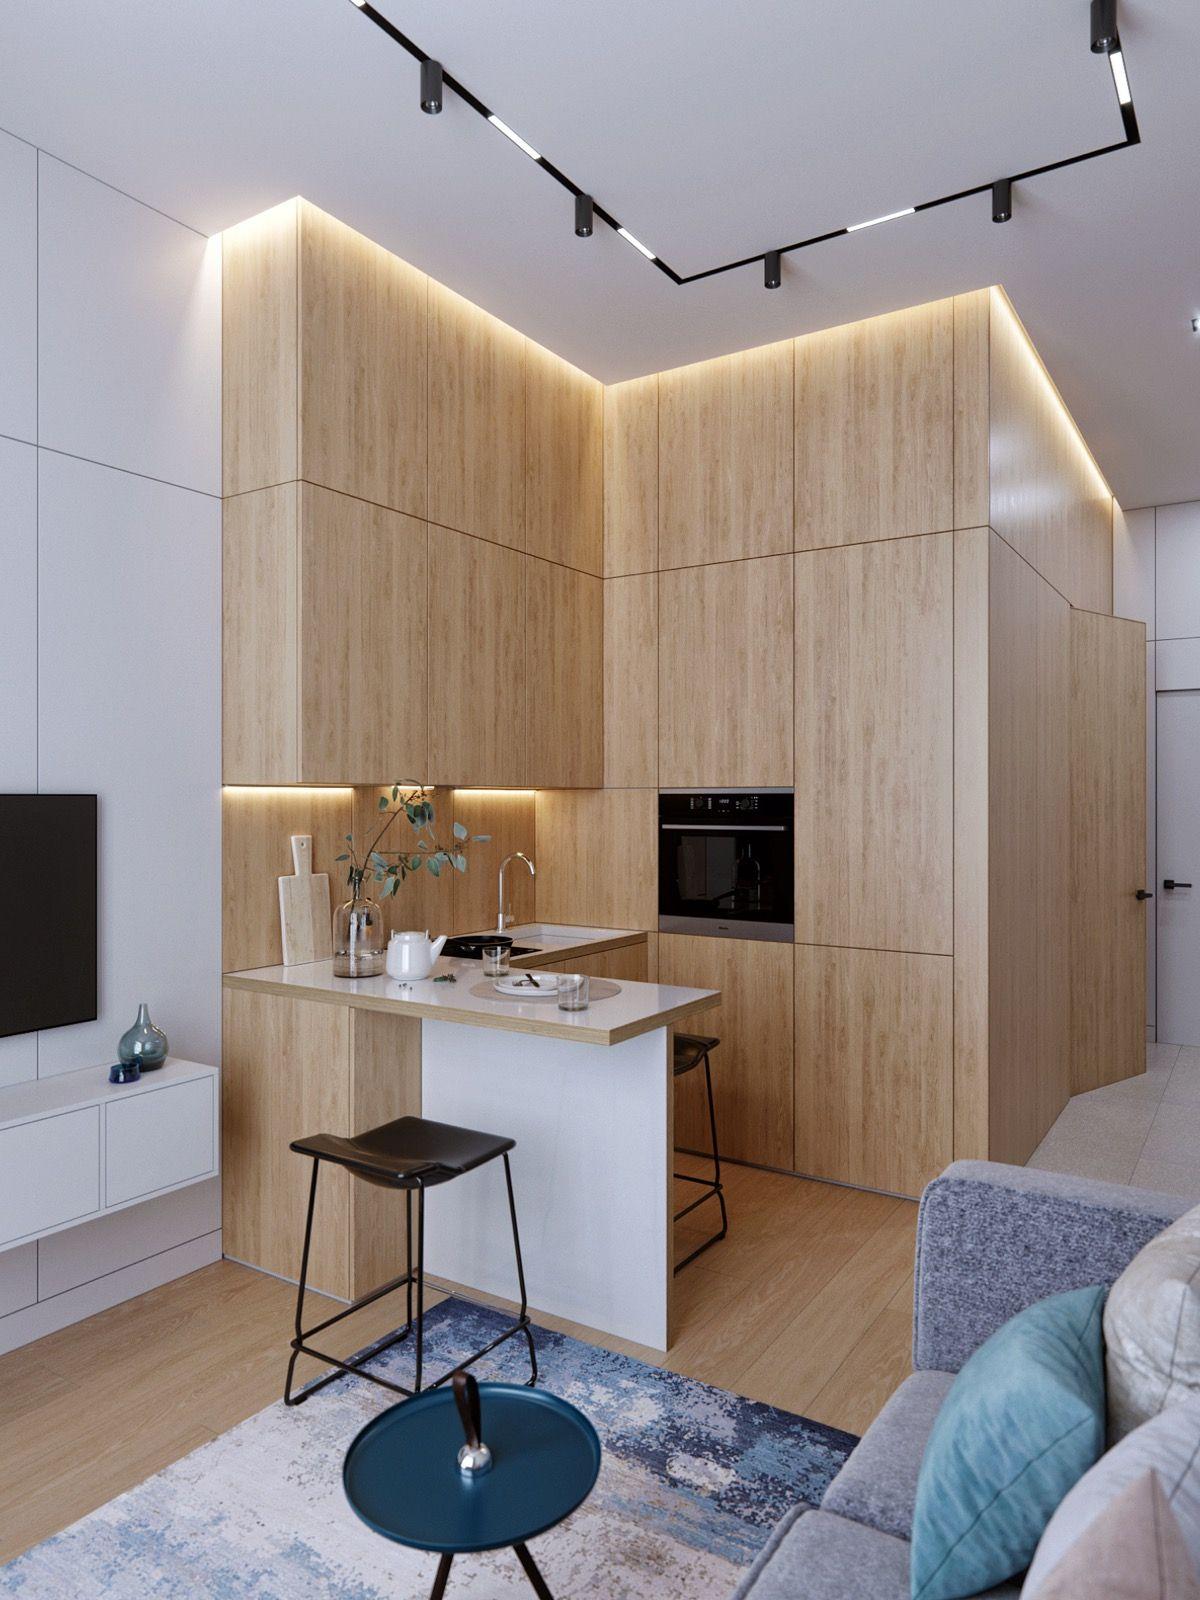 50 Lovely L-Shaped Kitchen Designs & Tips You Can Use From Them